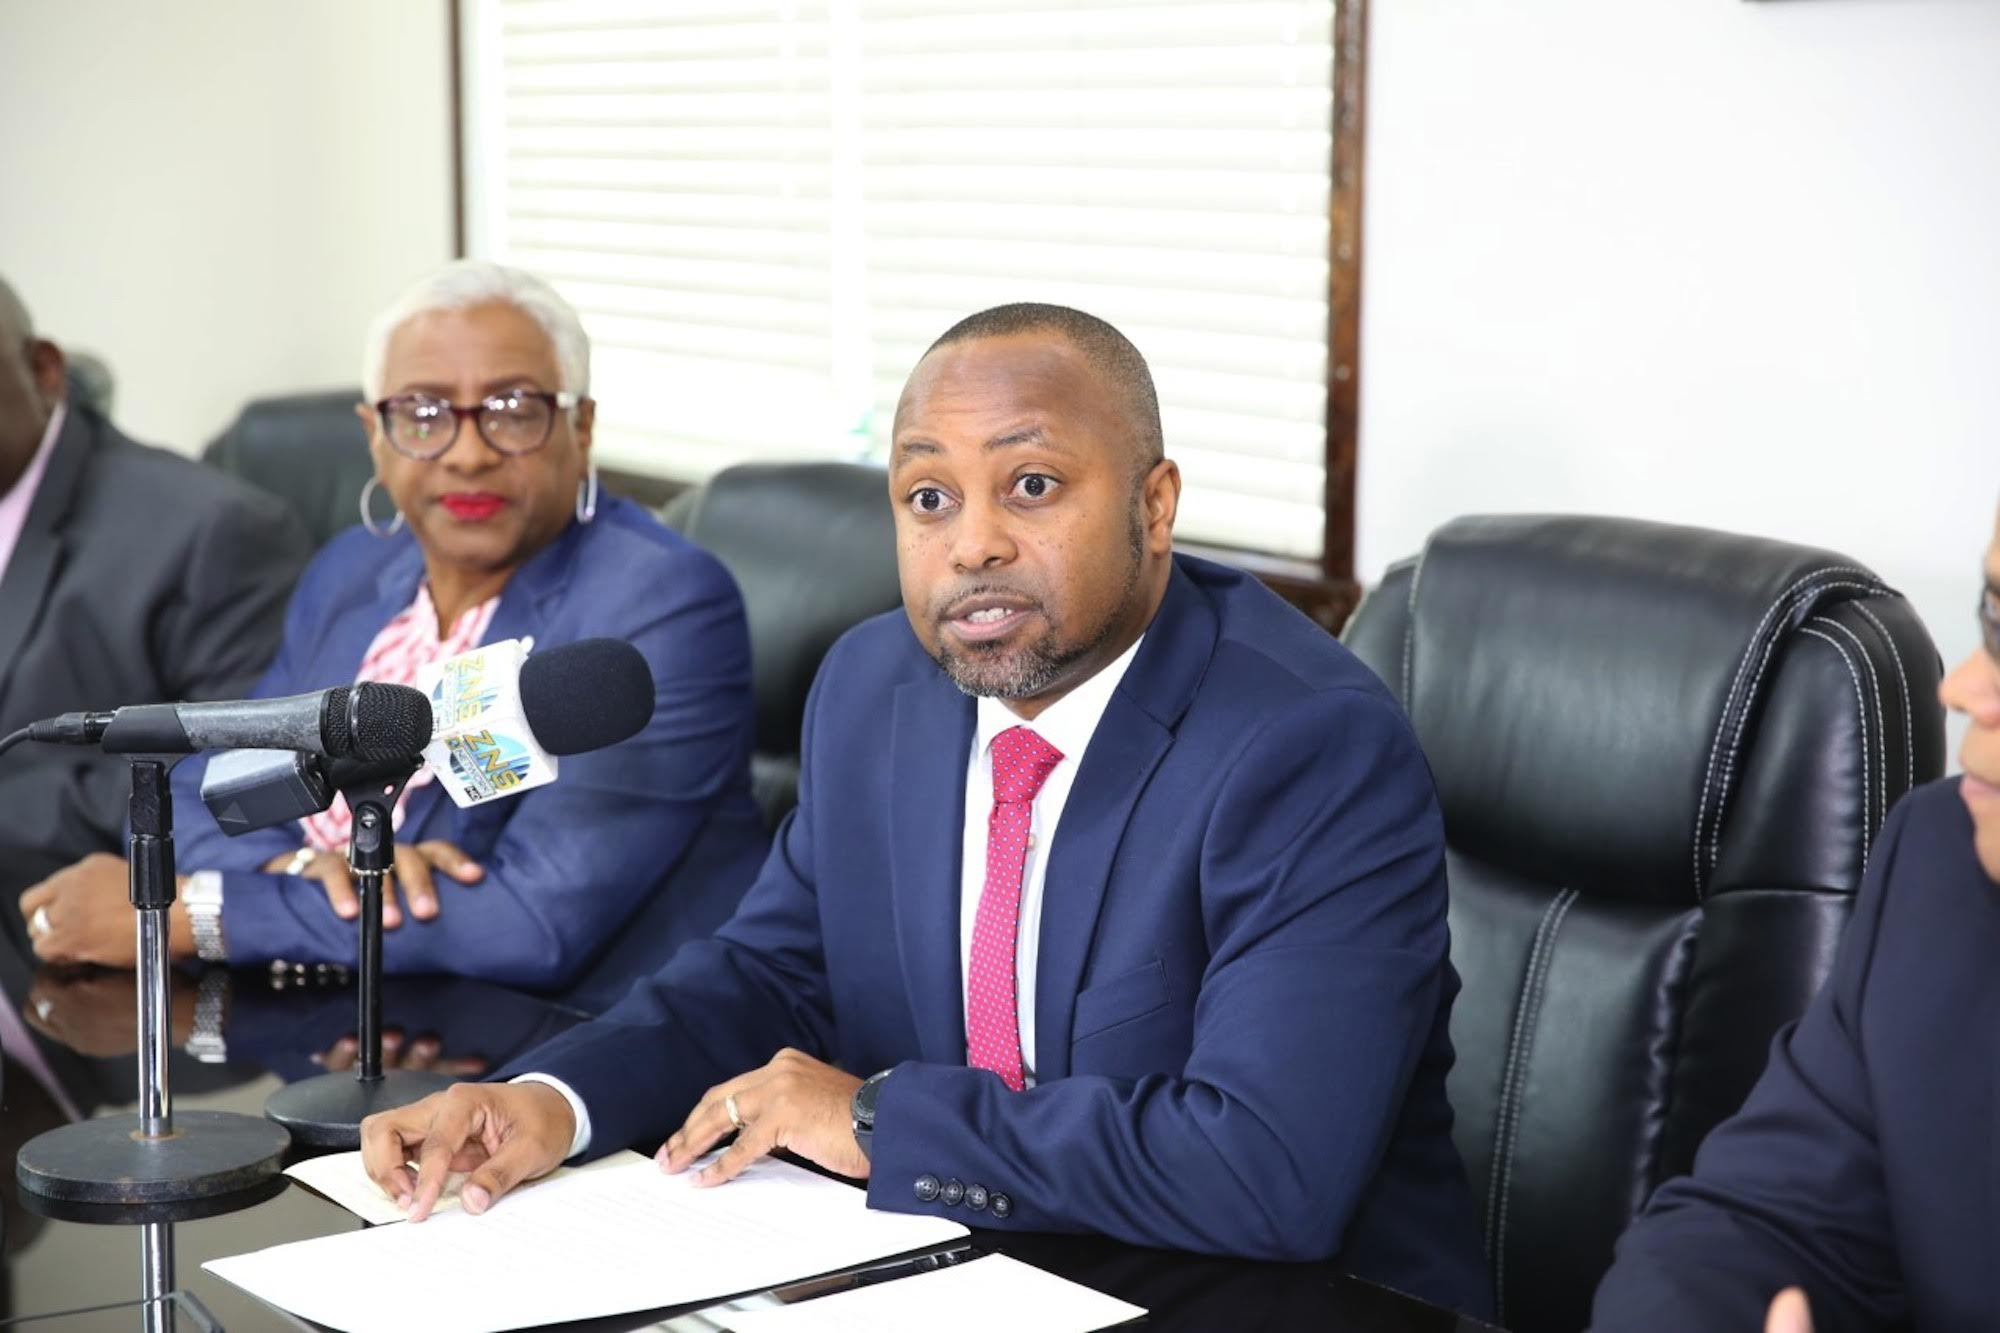 Senator Thompson releases statement on signing of Grand Lucayan LOI